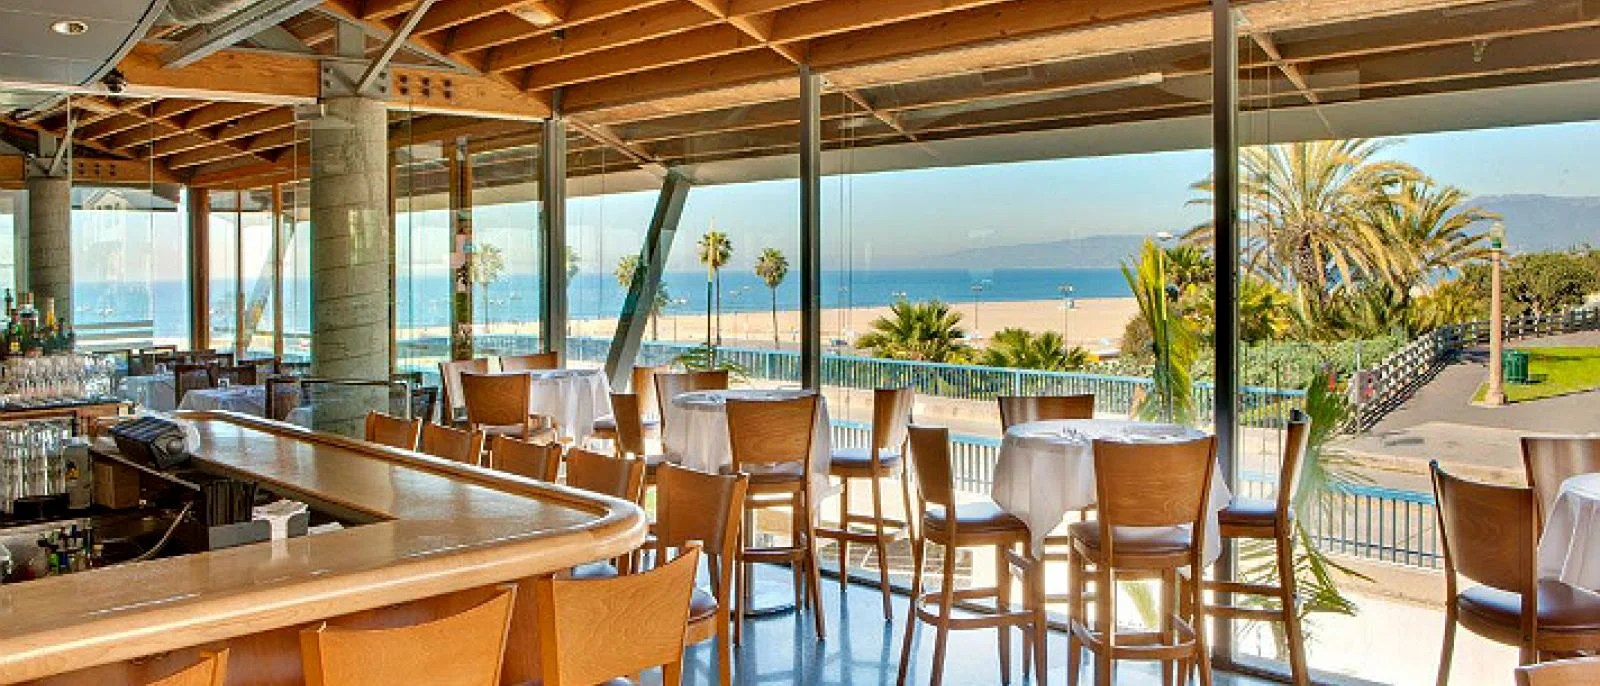 Beach Restaurant The Best Ocean View Restaurants On The Westside Of L A Discover